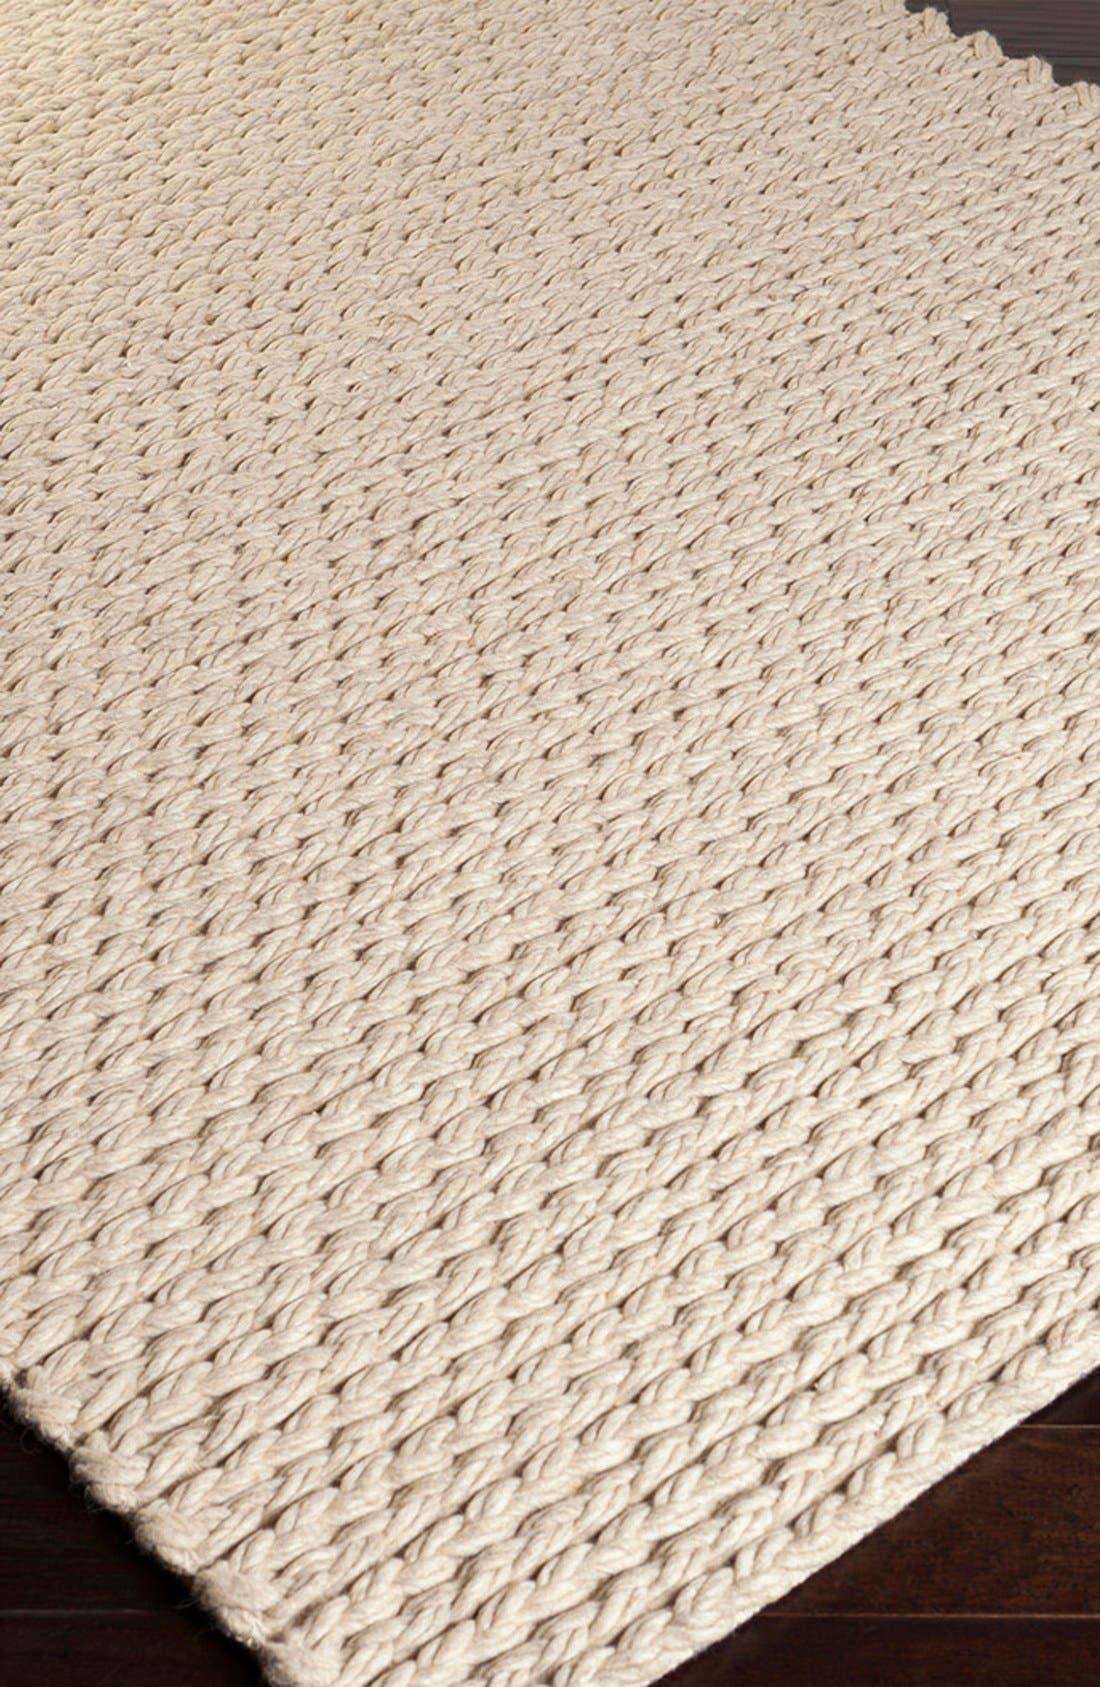 'Yukon' Hand Woven Wool Rug,                             Alternate thumbnail 3, color,                             Beige